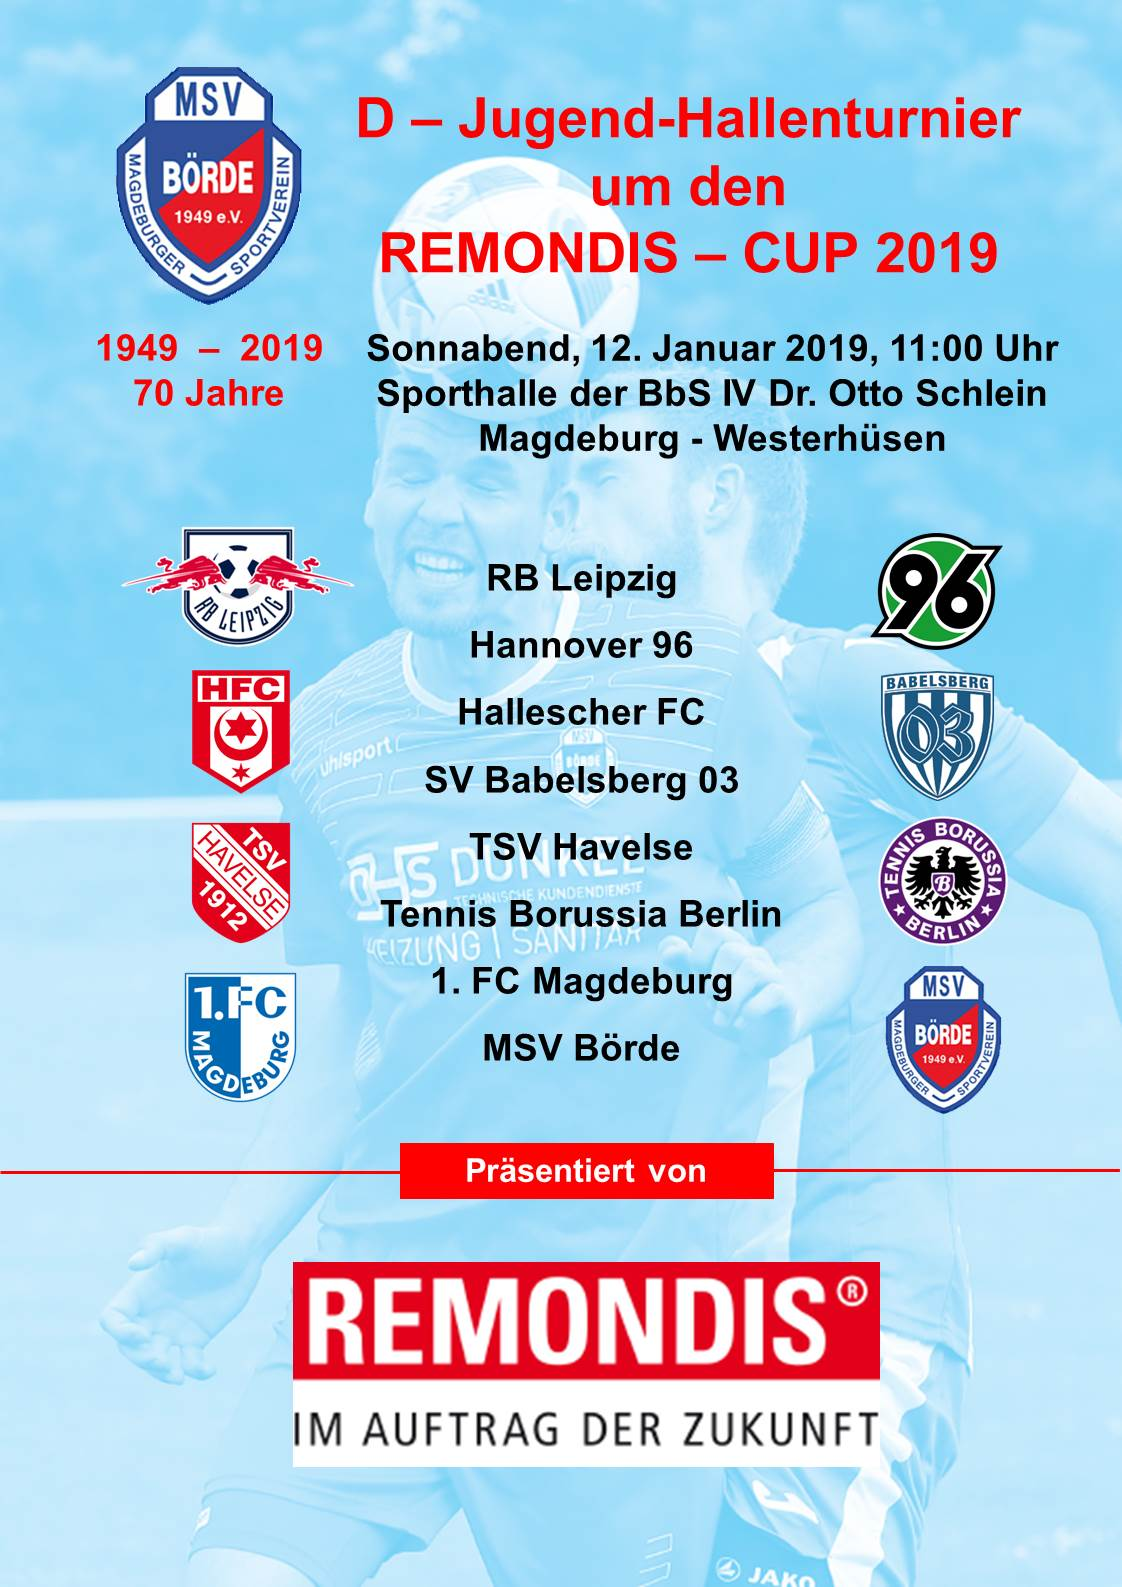 REMONDIS Cup 2019